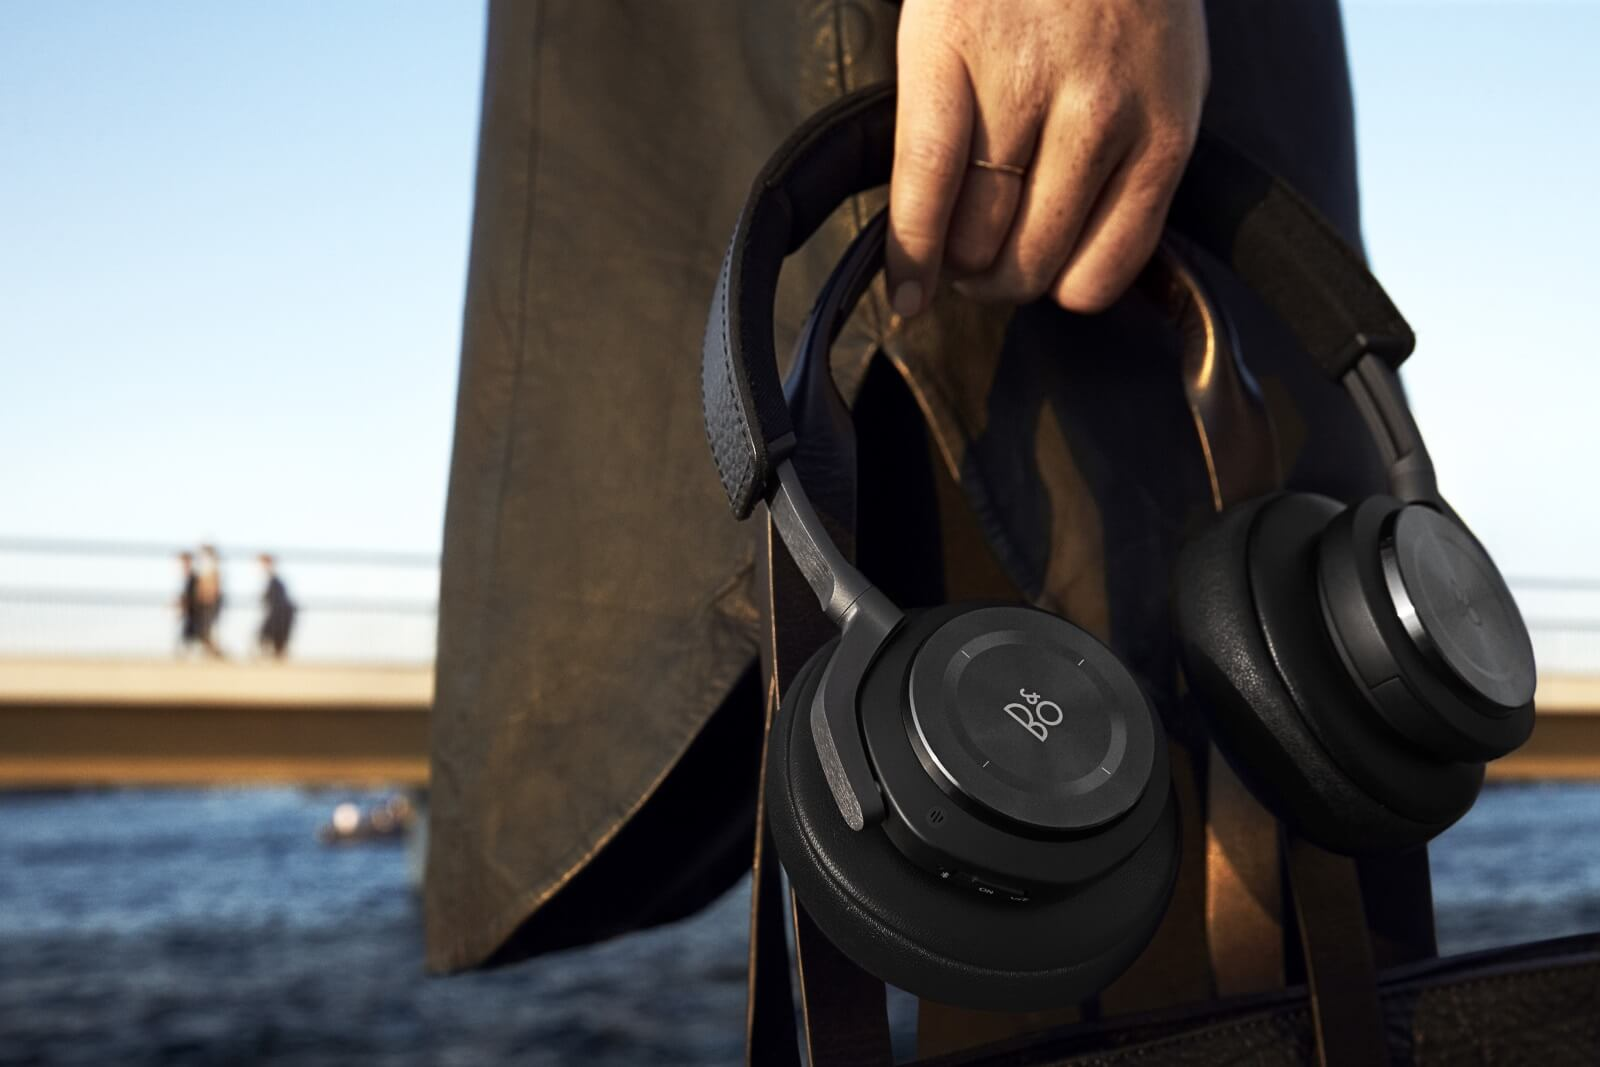 BeoPLay H9 made of anodized aluminum and leather